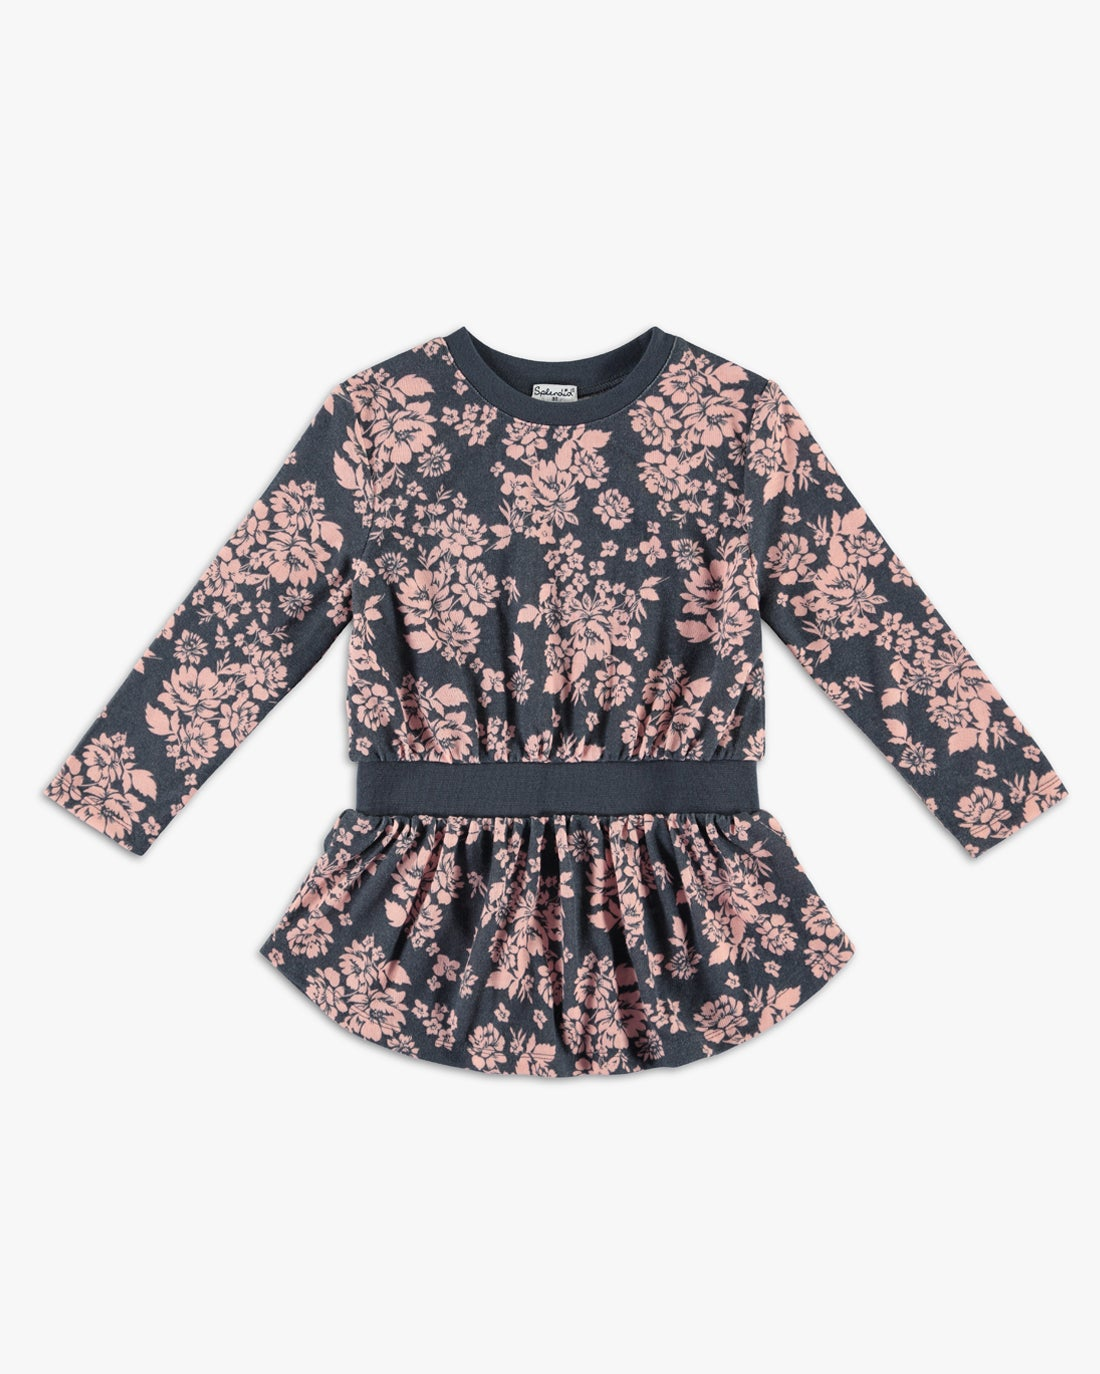 Home  Girl Floral Sweatshirt Dress. Skip to the end of the images gallery 3781b7d1b